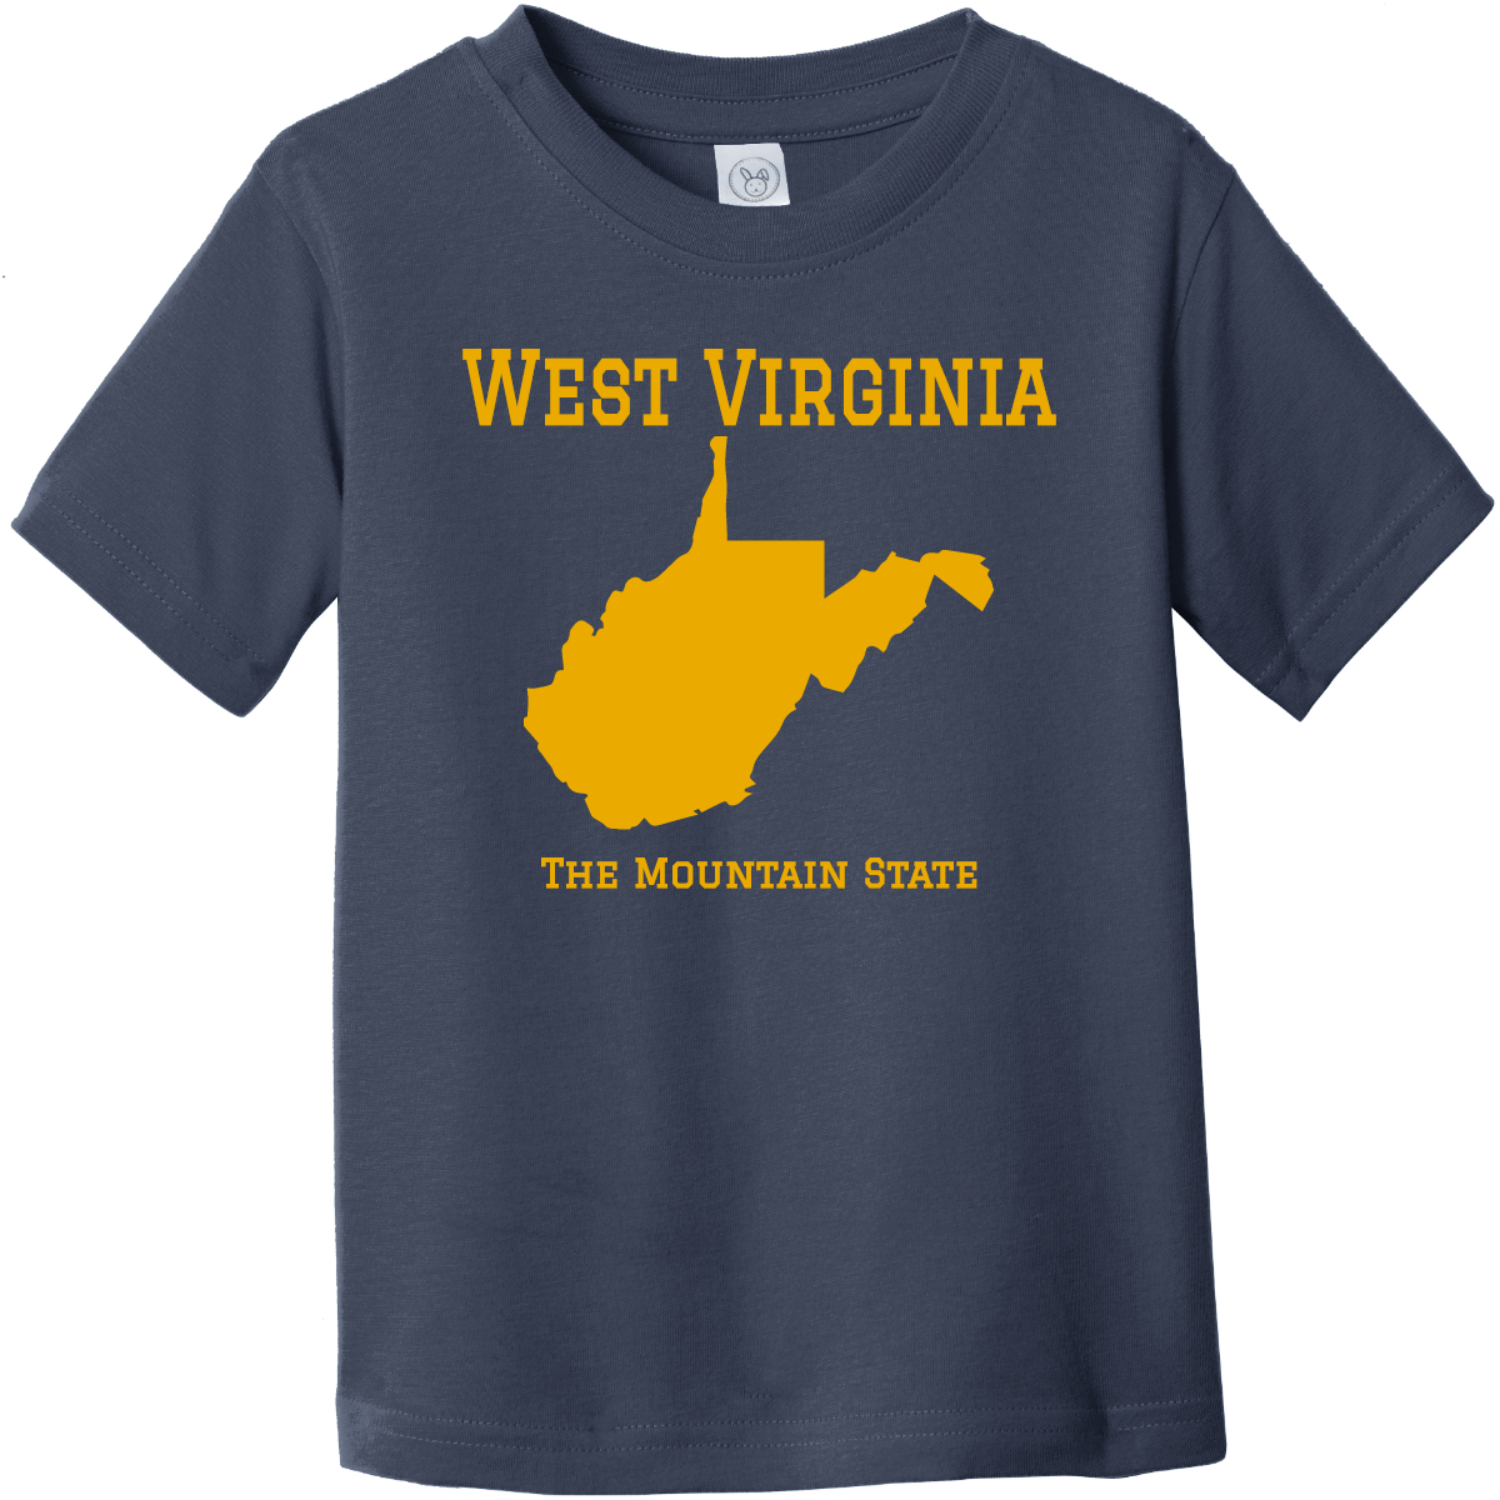 West Virginia The Mountain State Toddler T Shirt Navy Rabbit Skins Toddler Fine Jersey Tee RS3321